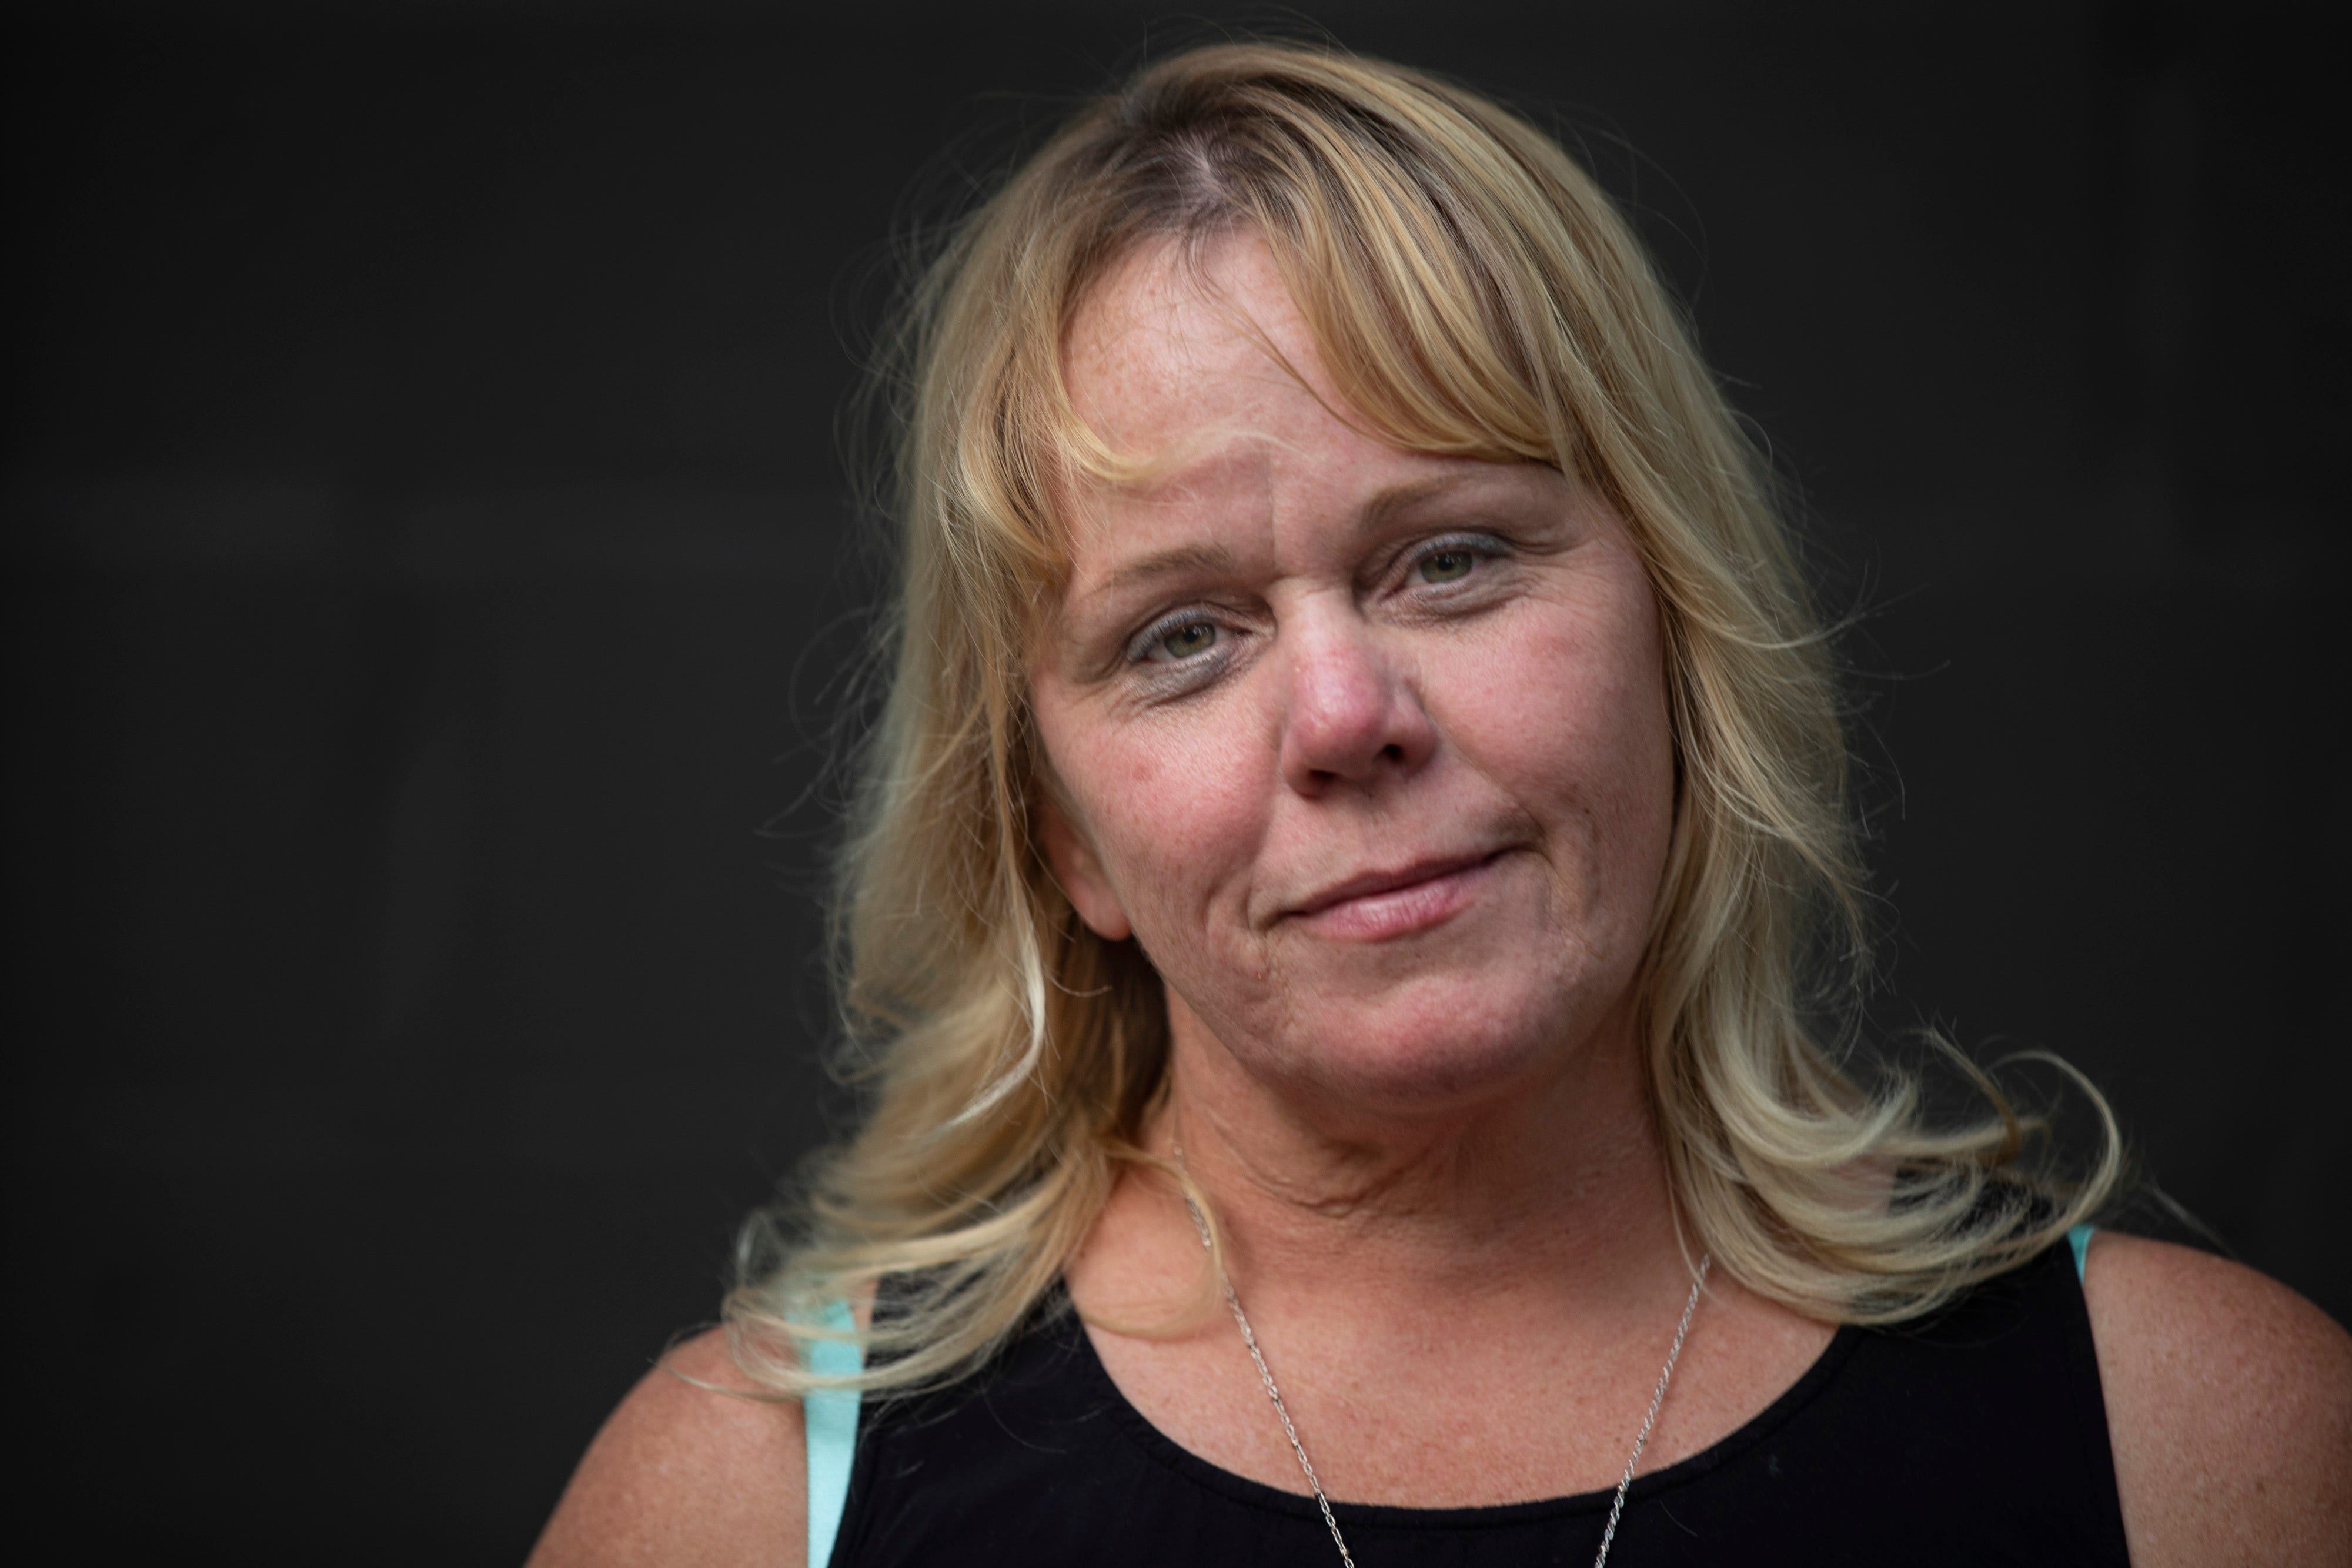 Lisa Dawn Wentworth began using methamphetamines in her 40s, quickly becoming a major drug dealer in the small mountain community of Lenoir, North Carolina.